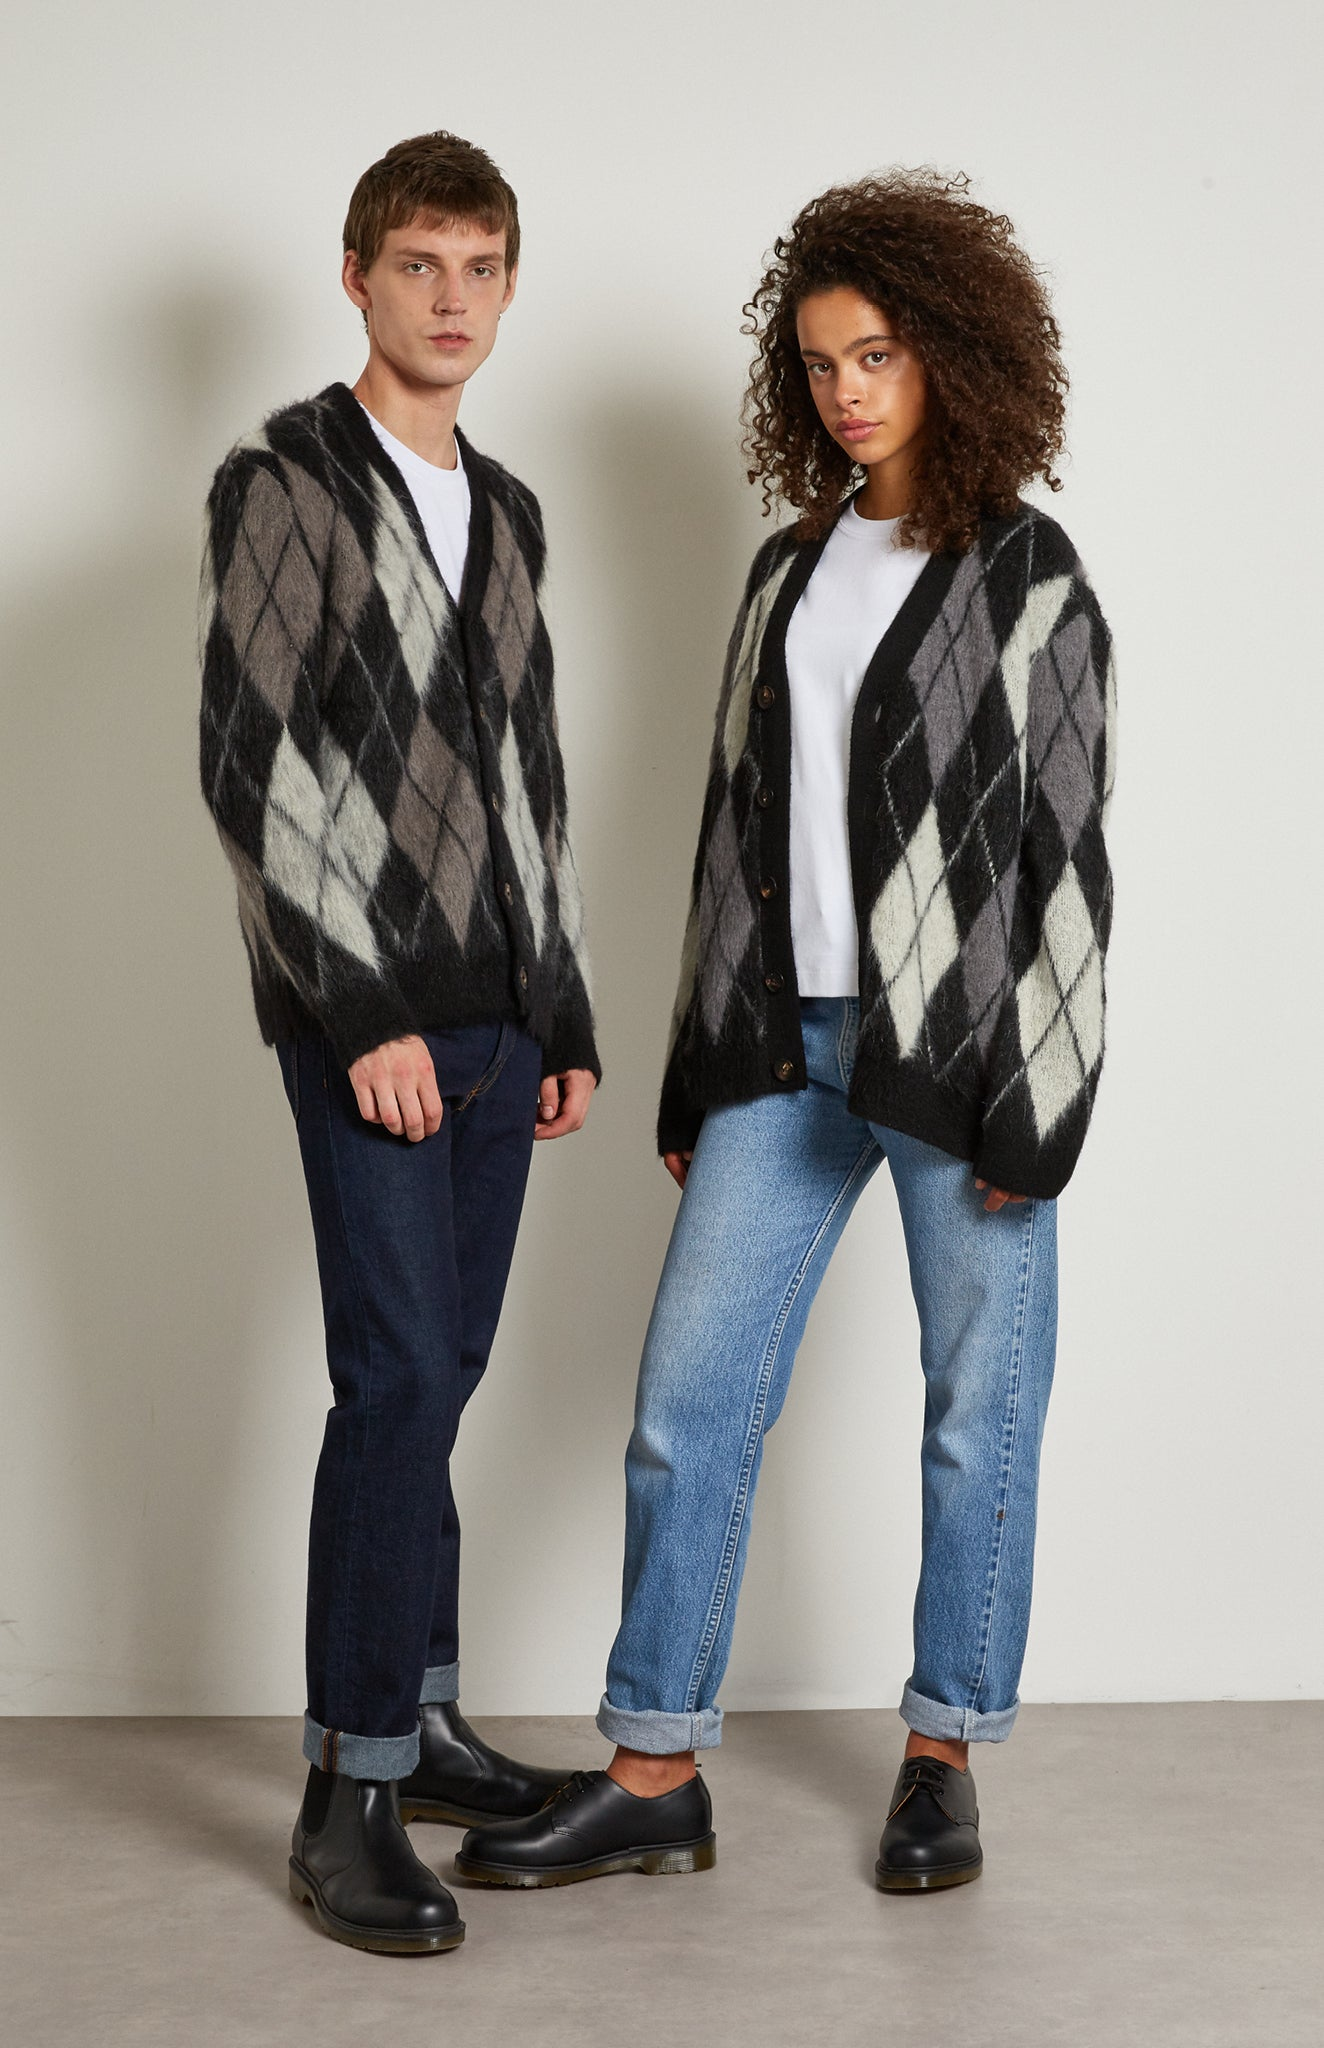 Pringle Reissued Unisex Monochrome Argyle Cardigan on male and female model